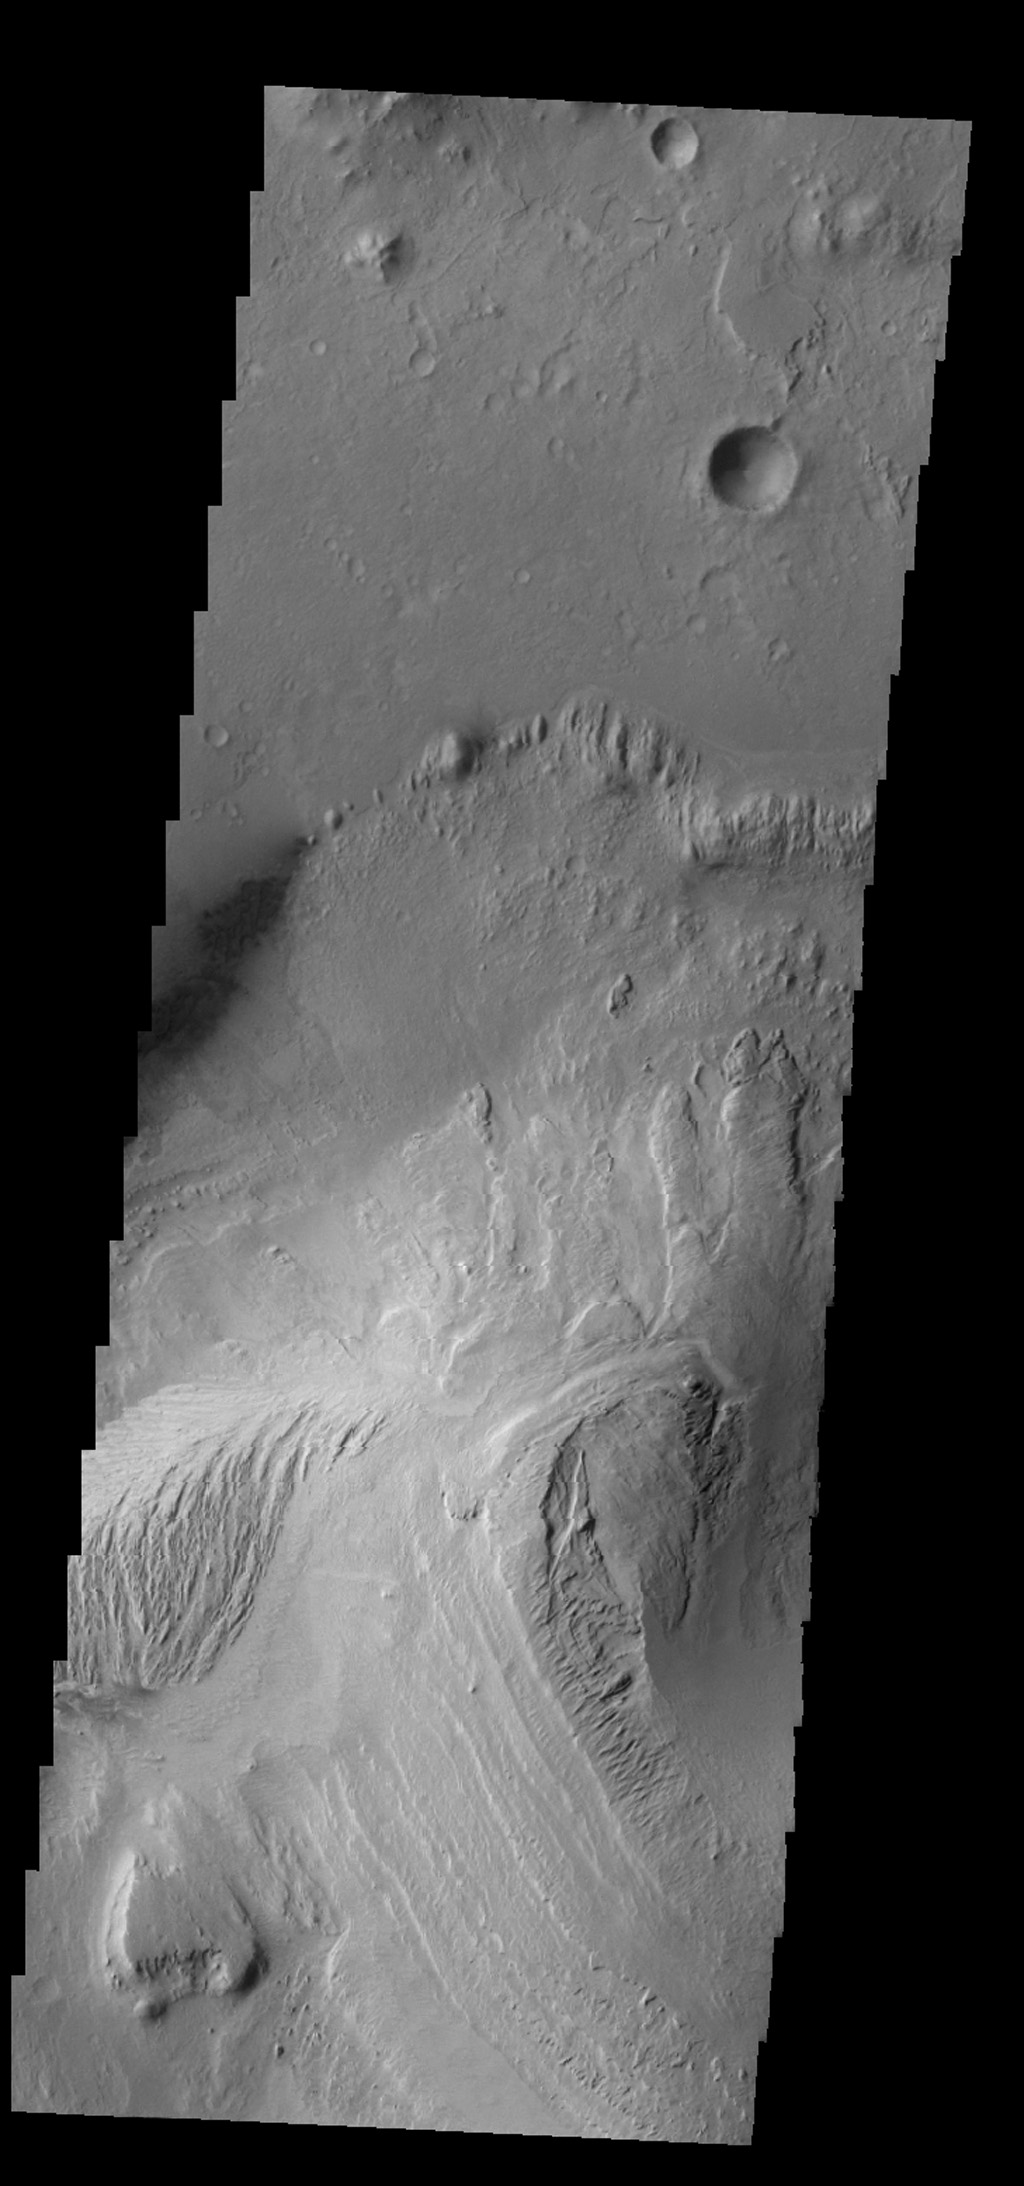 Gale Crater contains a large layered deposit, part of which is shown in this image captured by NASA's 2001 Mars Odyssey spacecraft. This deposit is the target of the Curiosity Lander due to land in early August 2012.